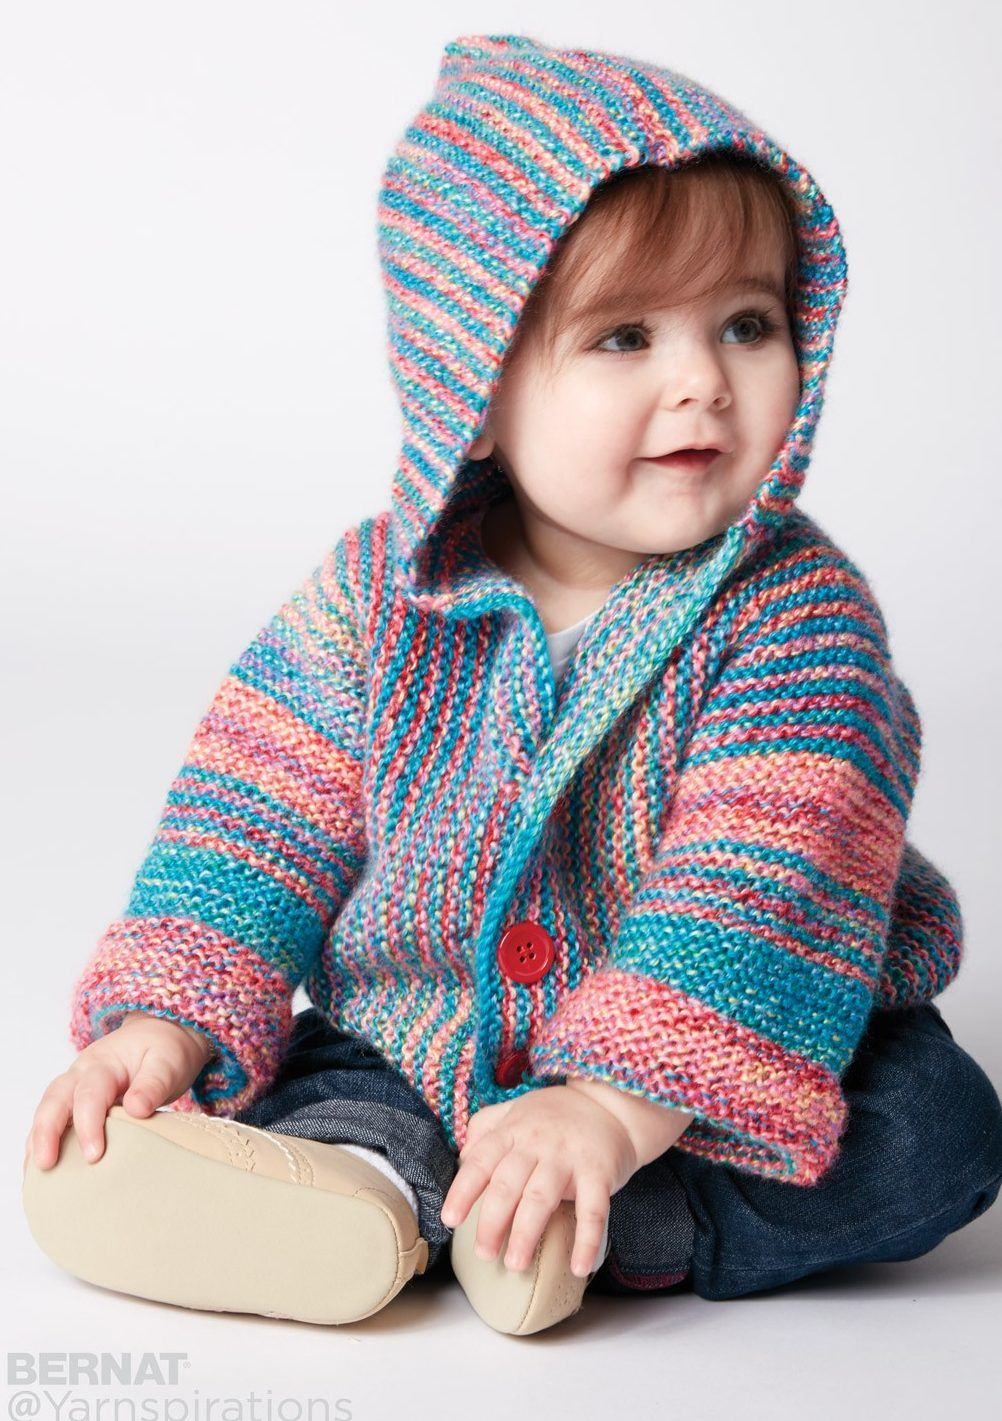 cafa82e8302e Free Knitting Pattern for Show Your Stripes Baby Jacket - This easy hooded  baby jacket is knit in garter stitch. The sweater is knit in one piece from  side ...